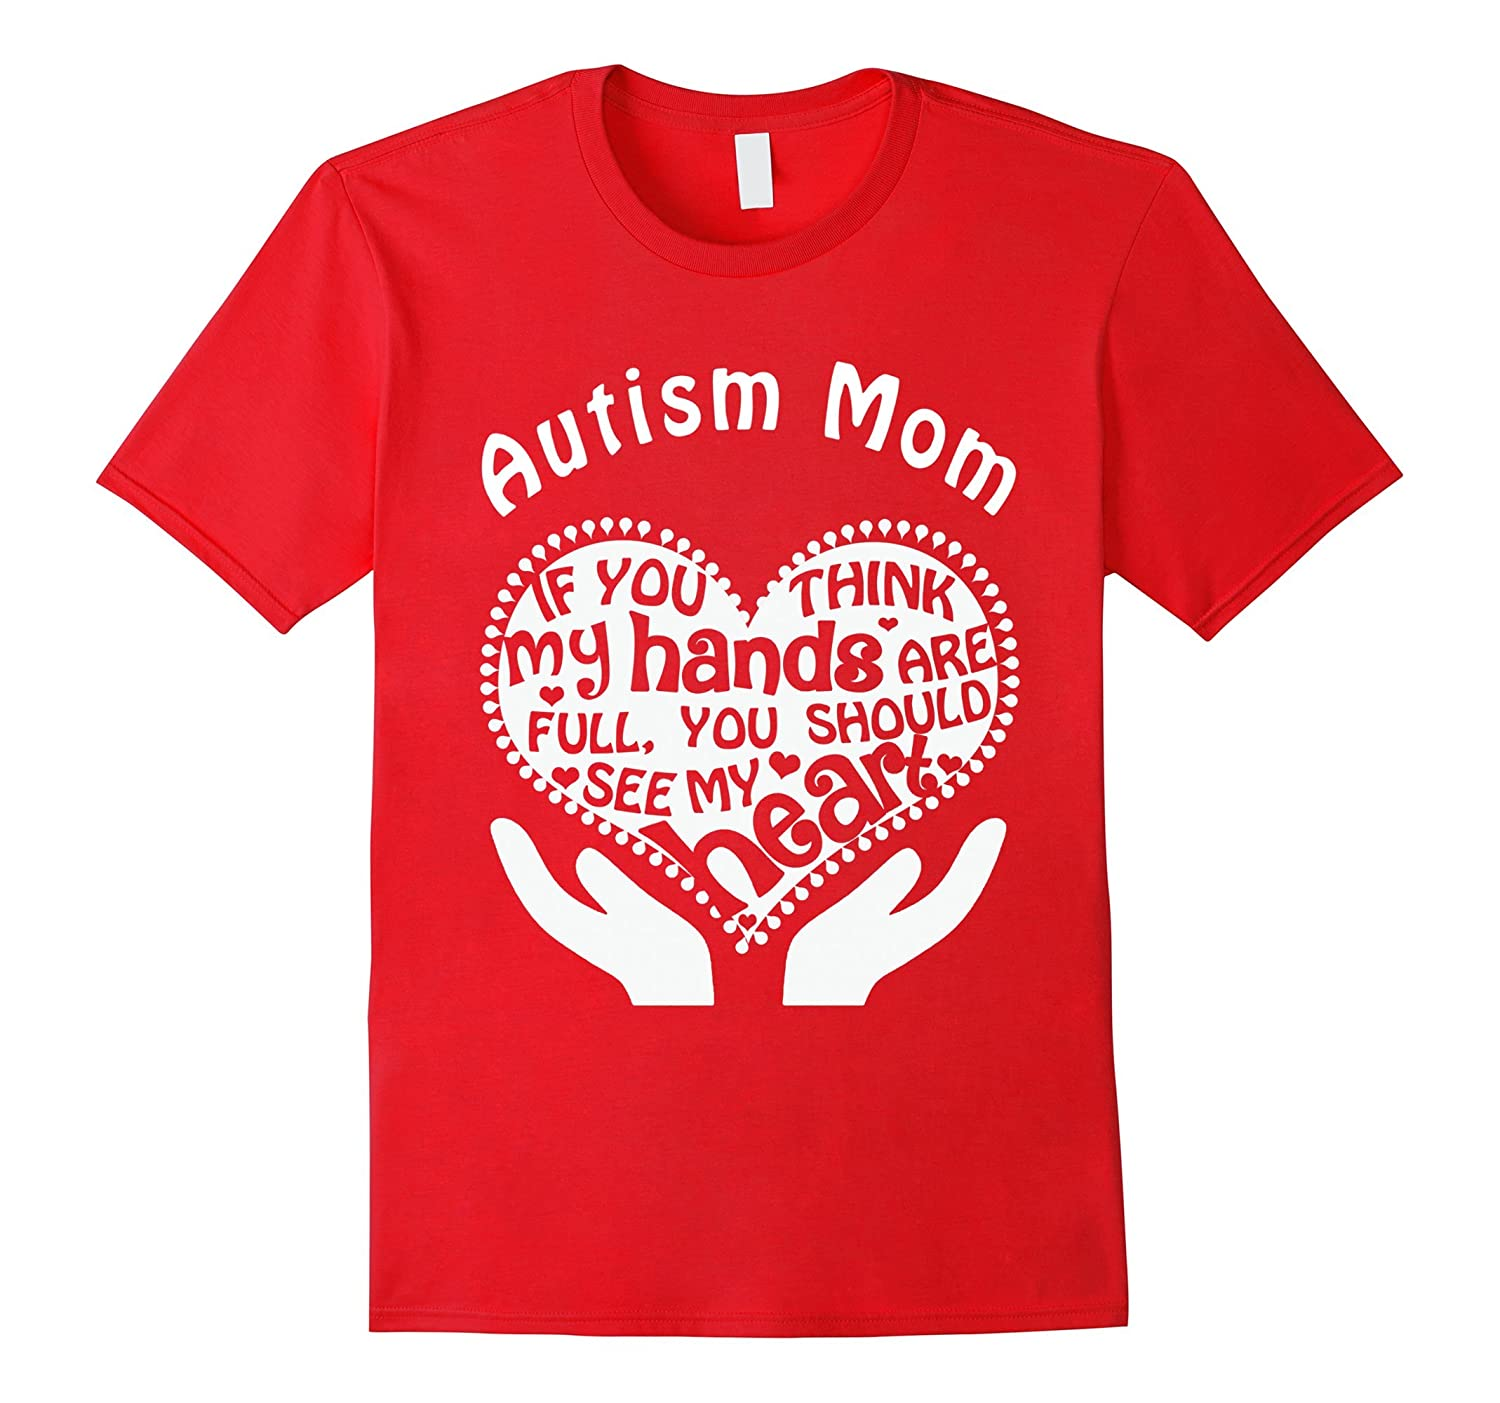 Autism Mom T-shirt , Autism Mom If you think my hands are fu-BN